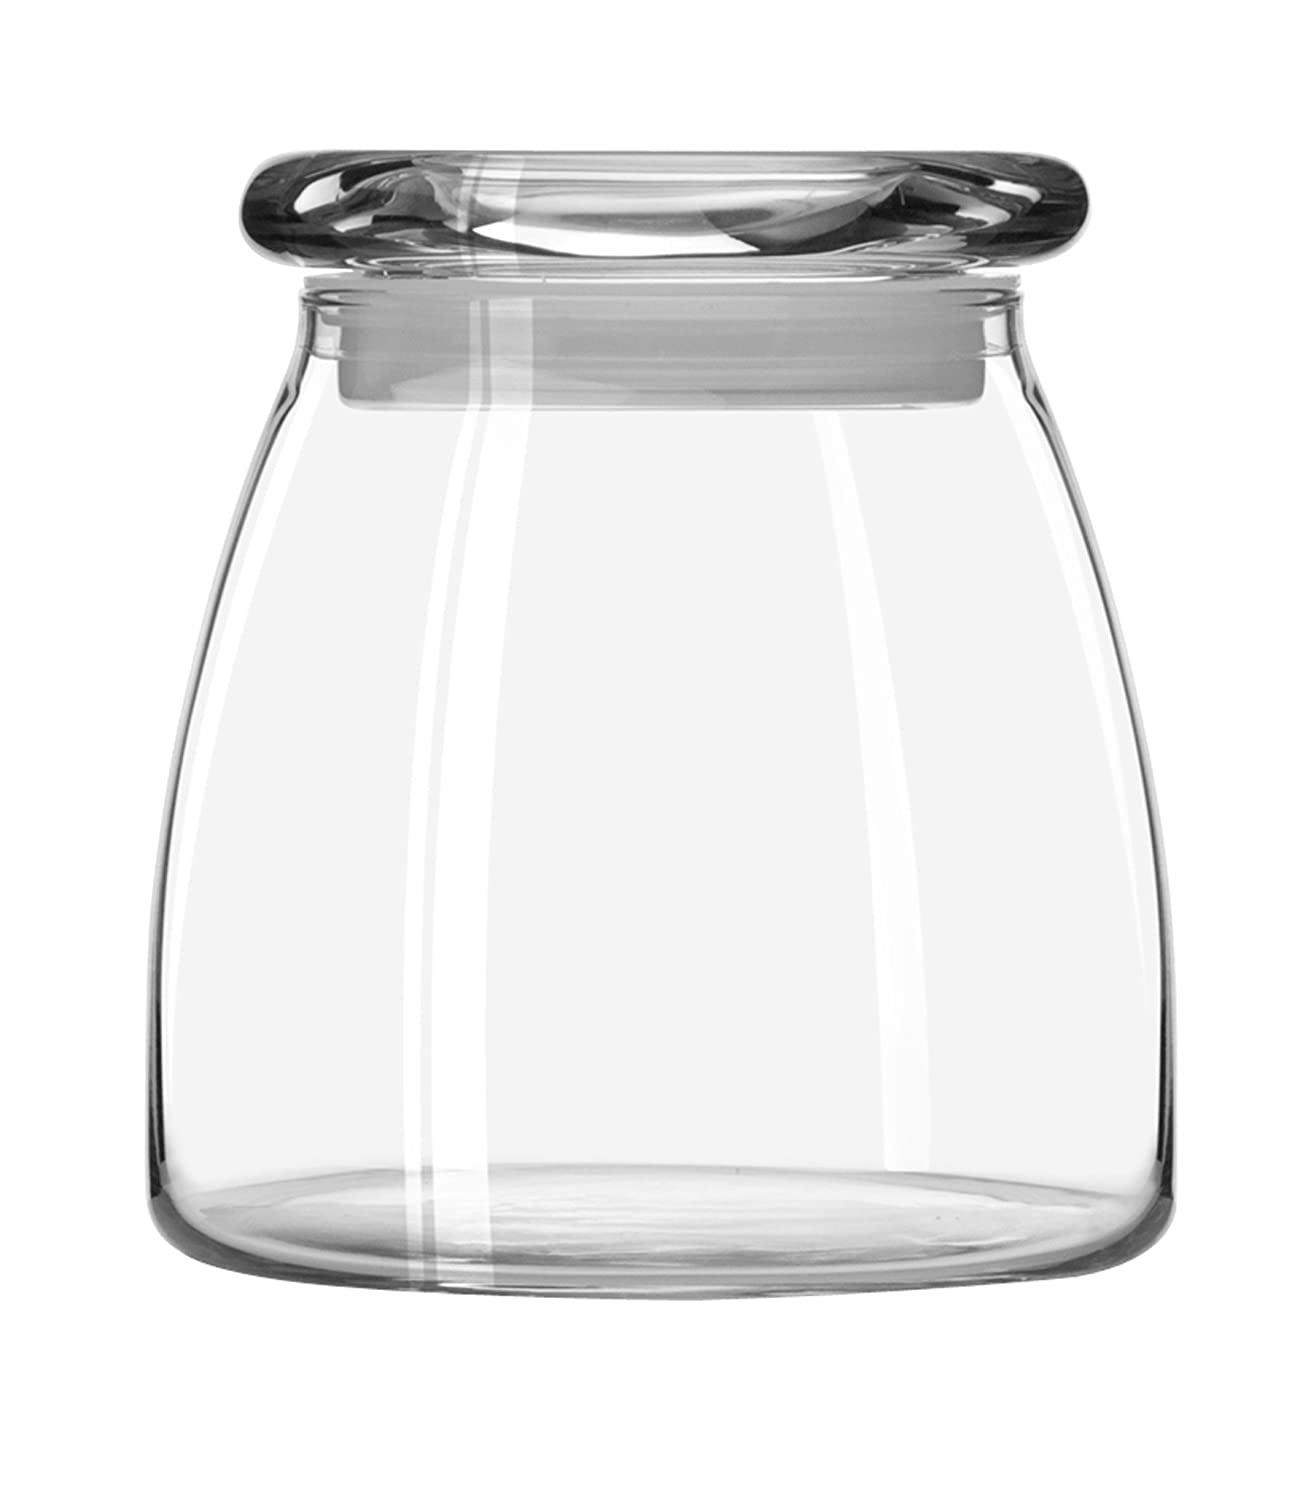 Libbey 12-1/2-Ounce Vibe Storage Jars, Set of 6 71356